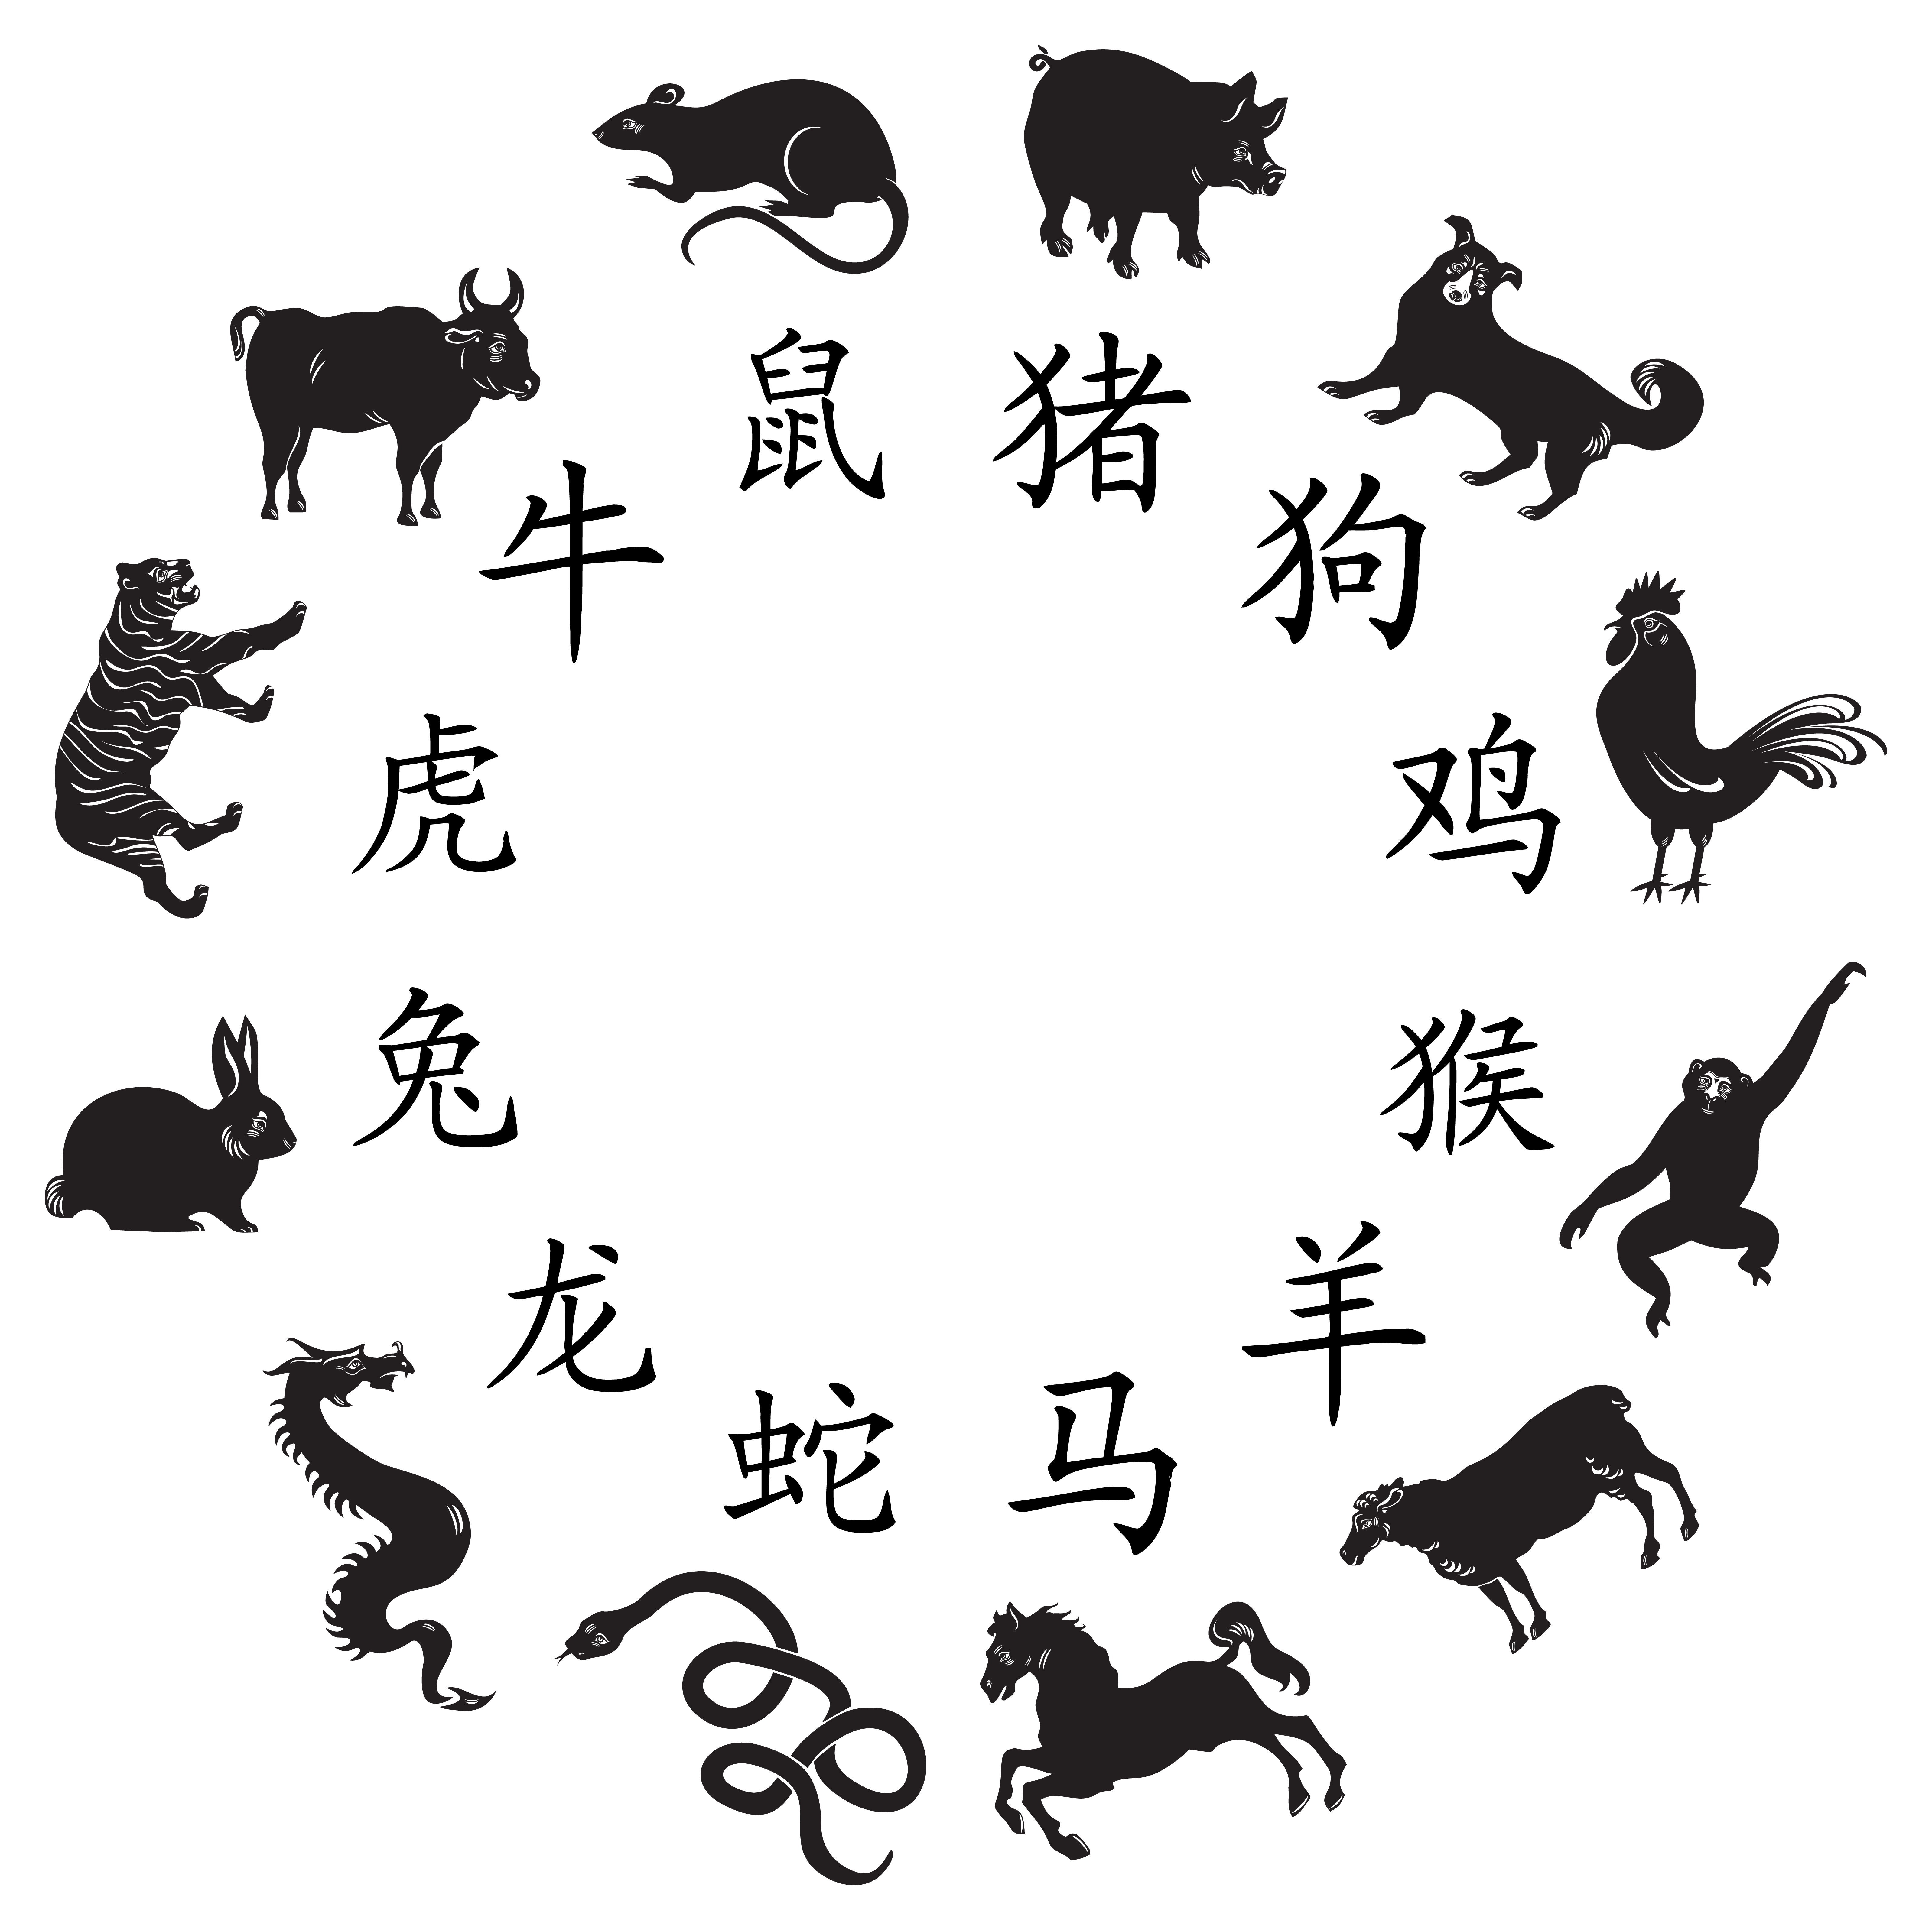 Transparent Chinese Zodiac PNG Clipart Image.